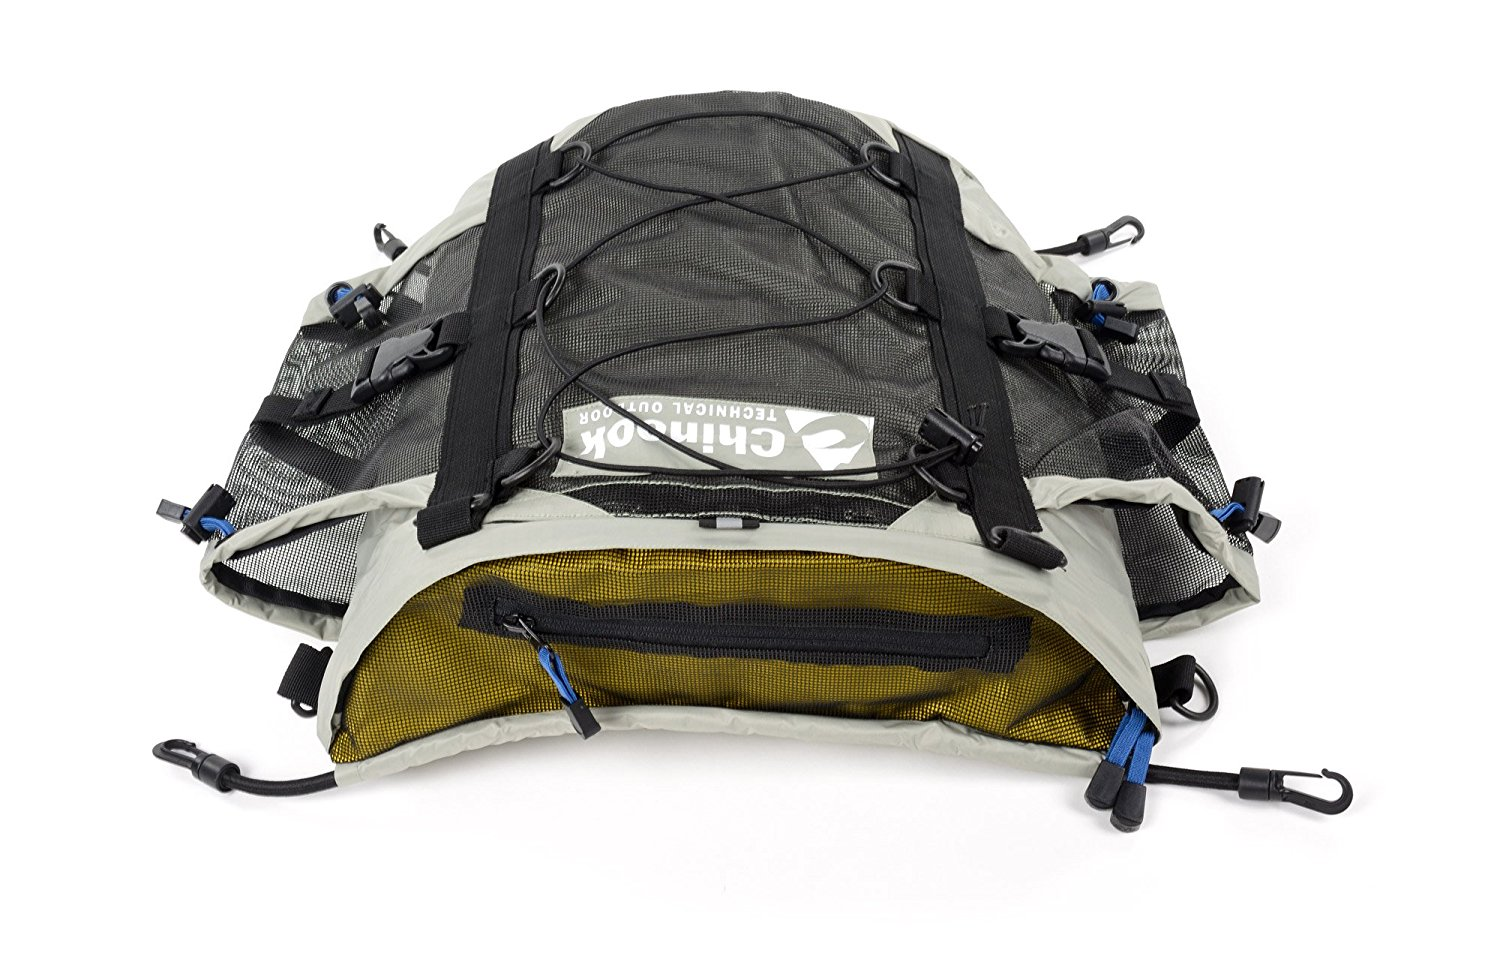 Chinook Aquatidal 25 Deck Bag